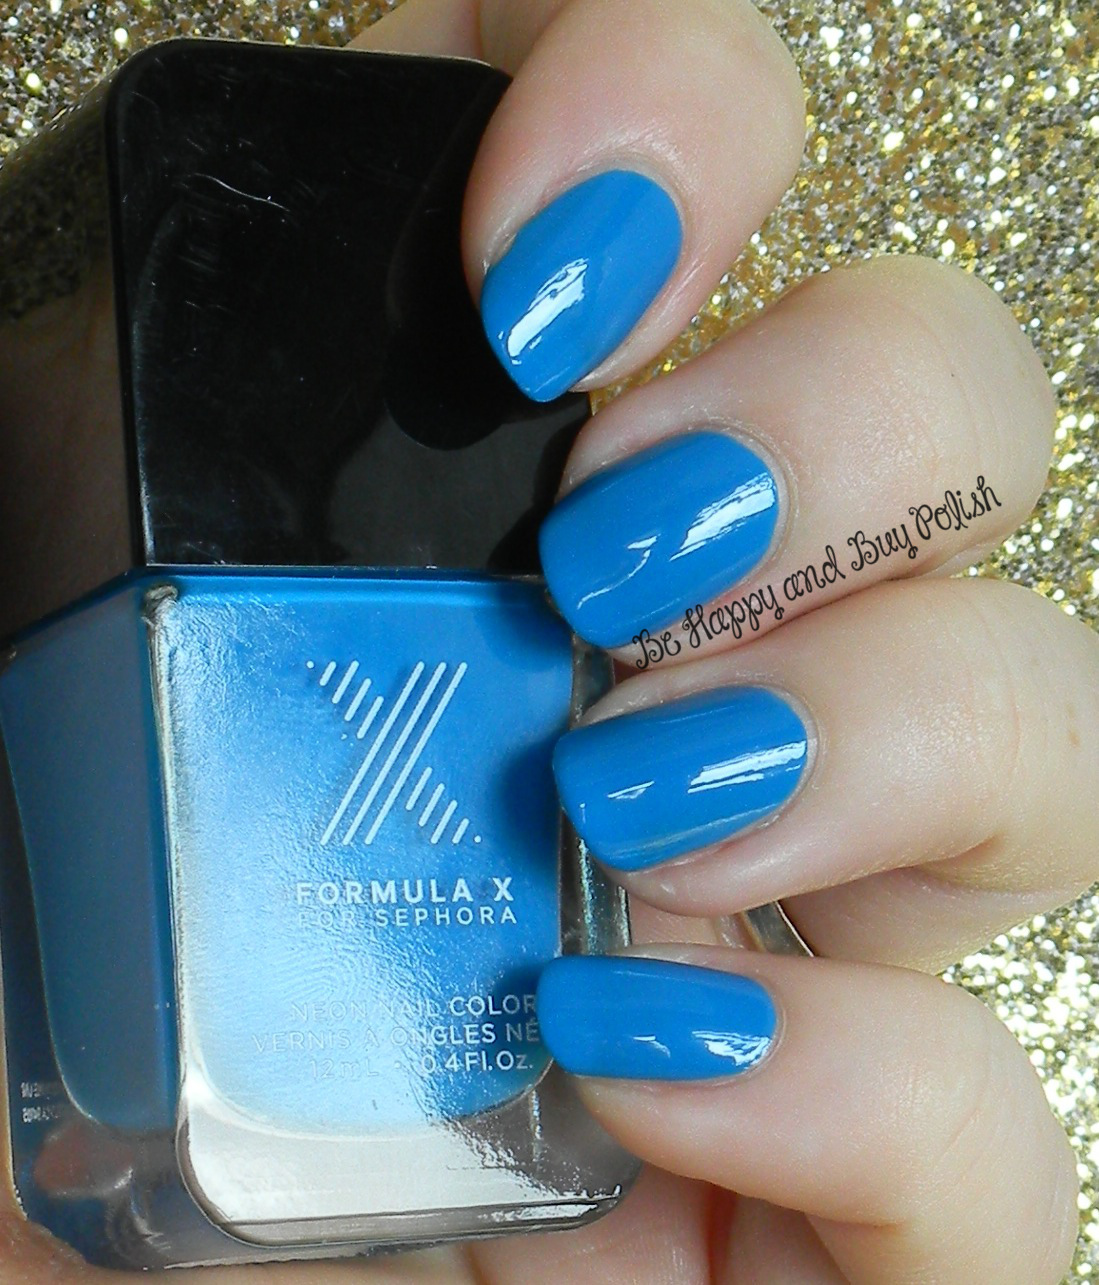 Sephora Formula X nail polish swatches + review | Be Happy and Buy ...